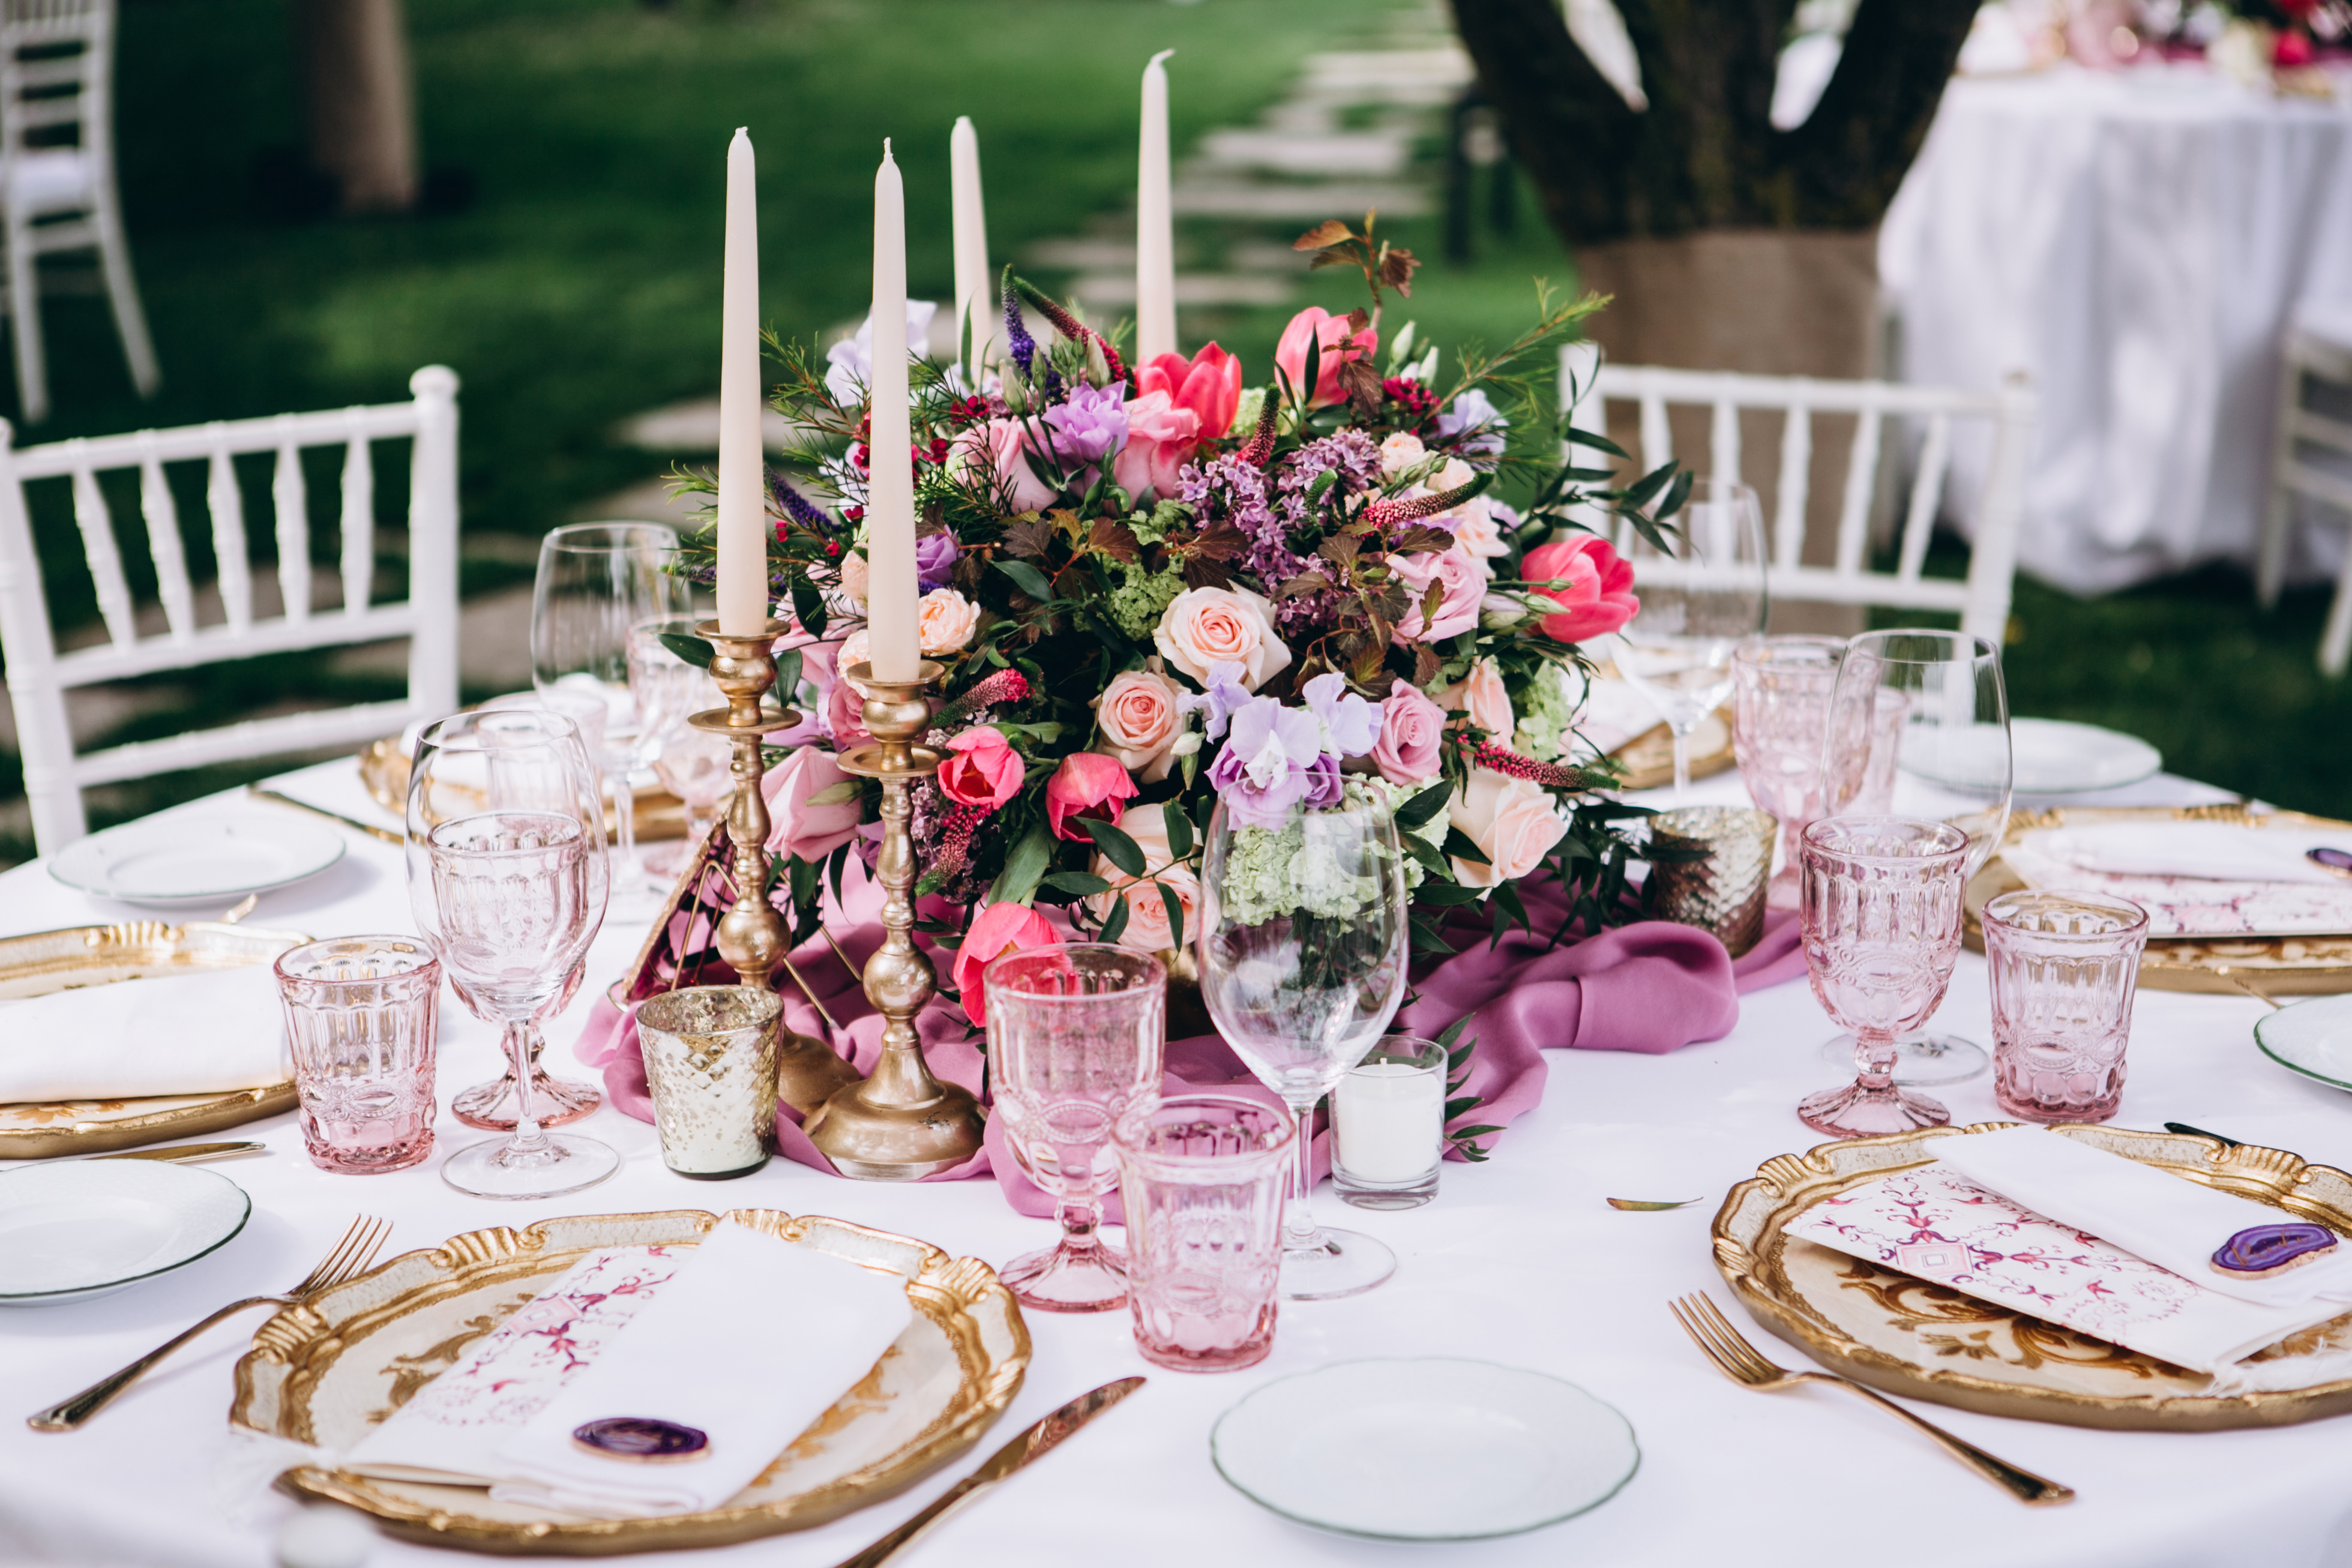 Table centrepiece floral decoration in pinks and purple on round wedding table including candles in brass holders and pink wine glasses